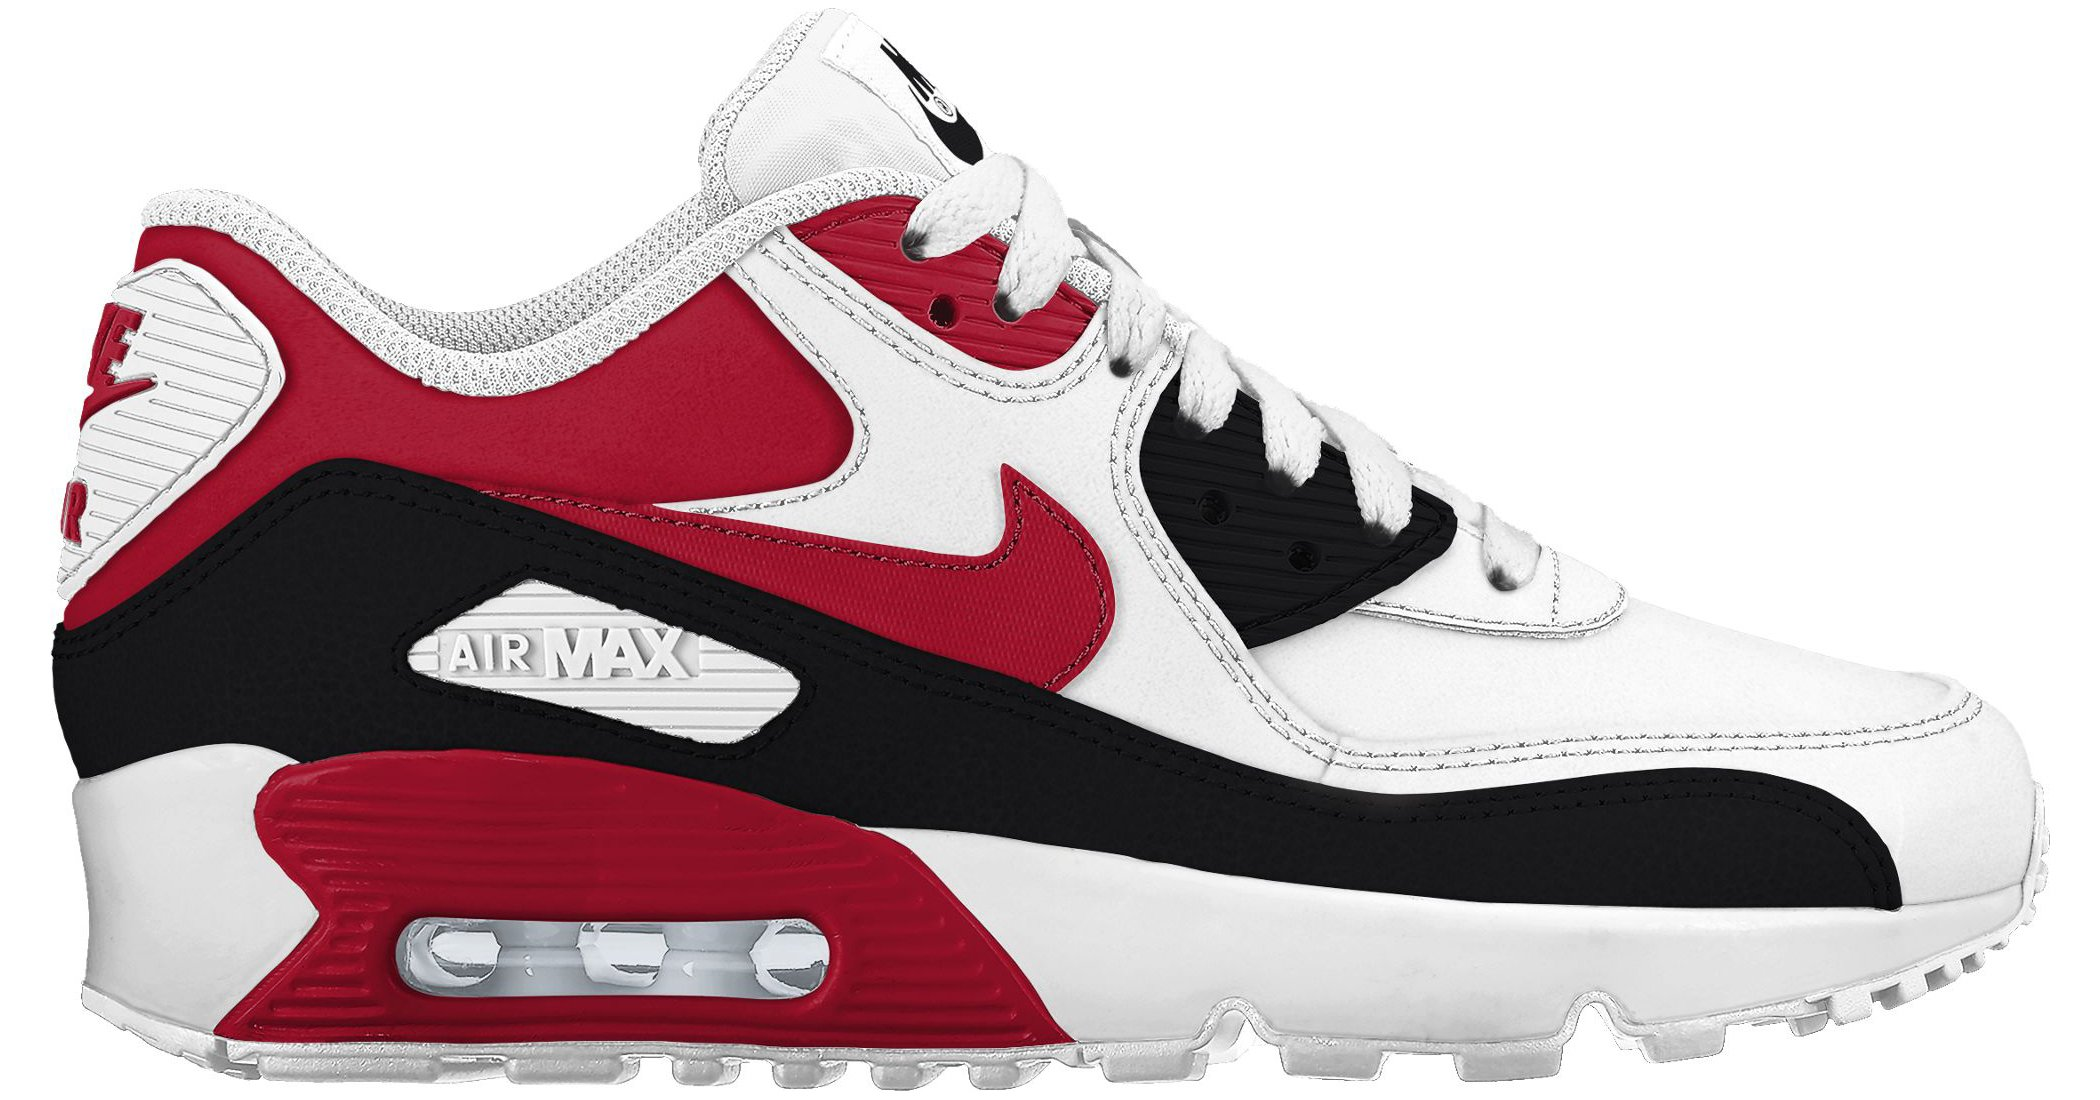 Nike GS Big Kids Air Max 90 Leather Fashion Shoes White/University Red/Black, 7